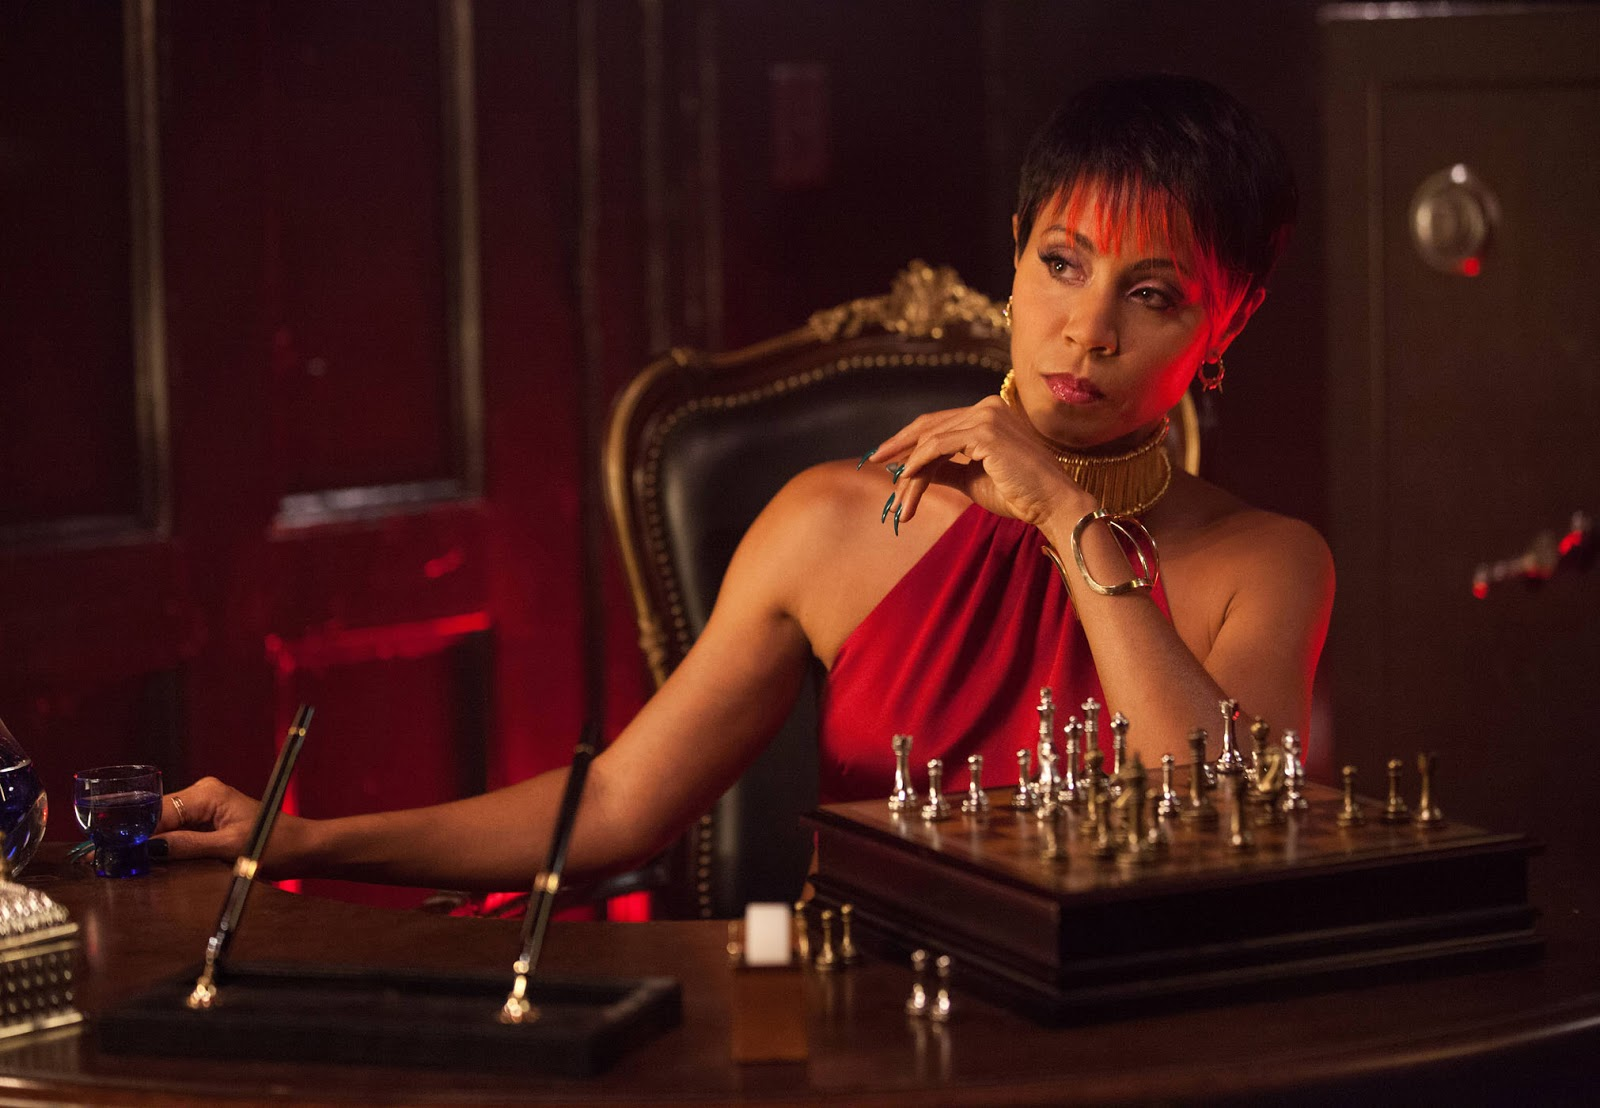 Gotham - Season 2 - Jada Pinkett Smith Returning for Multiple Episodes